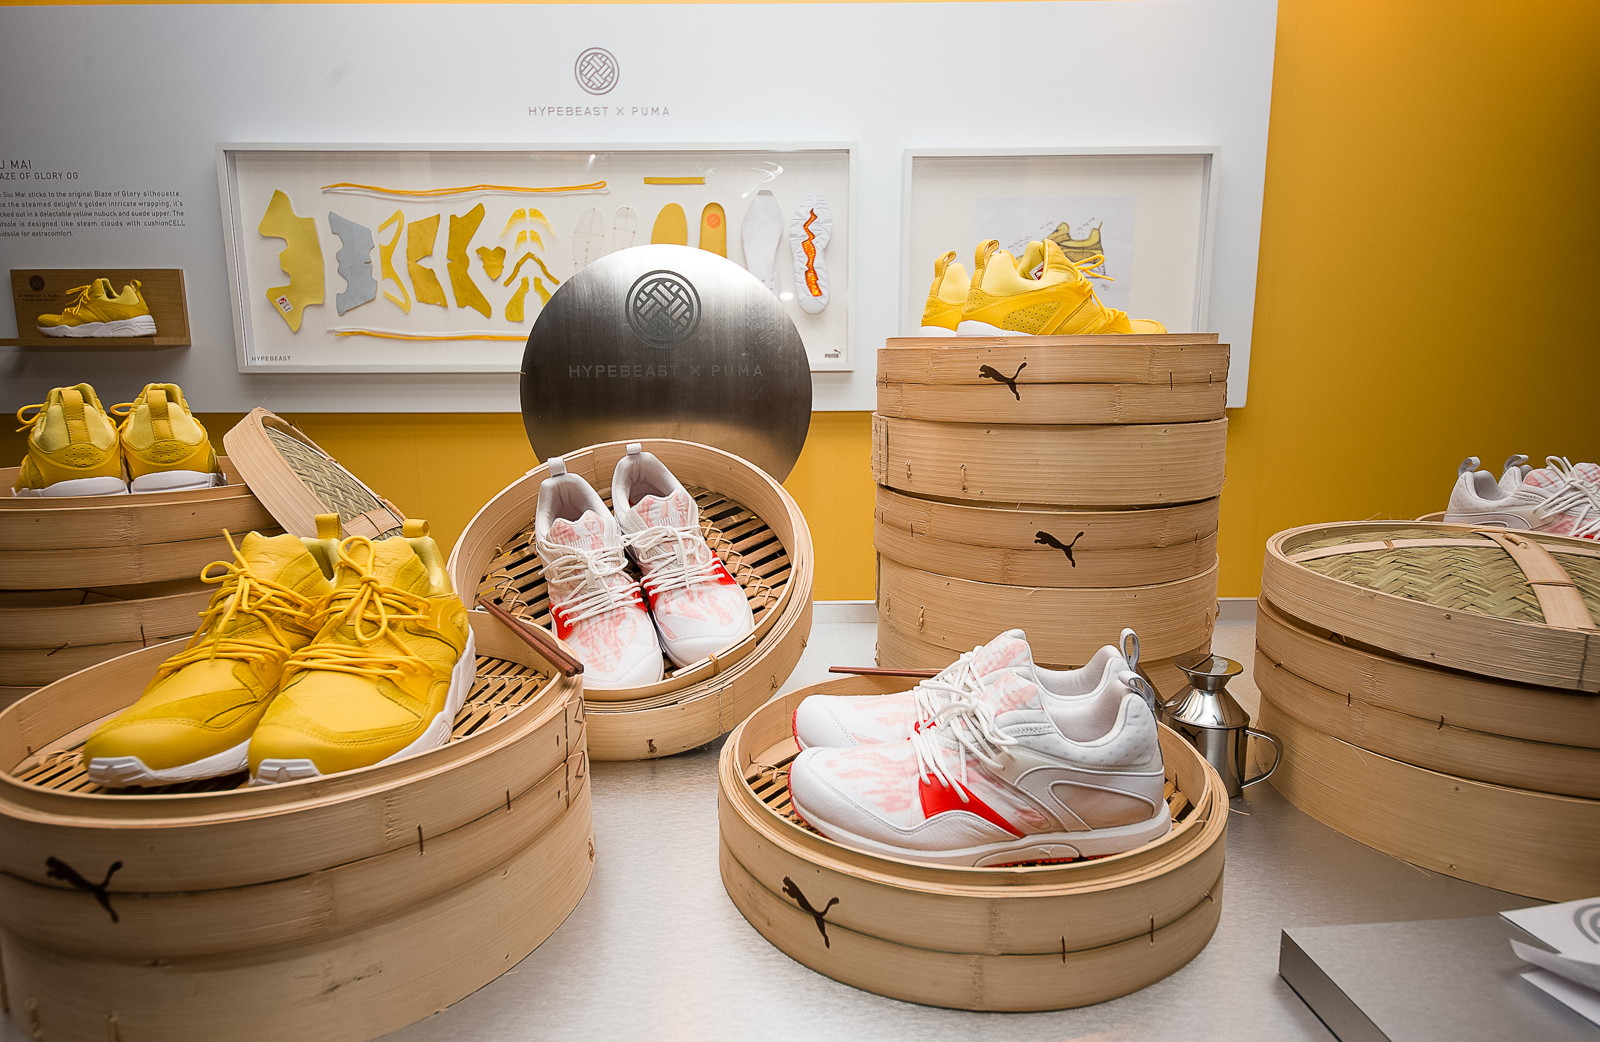 that-food-cray-hypebeast-puma-dim-sum-project-1.jpg